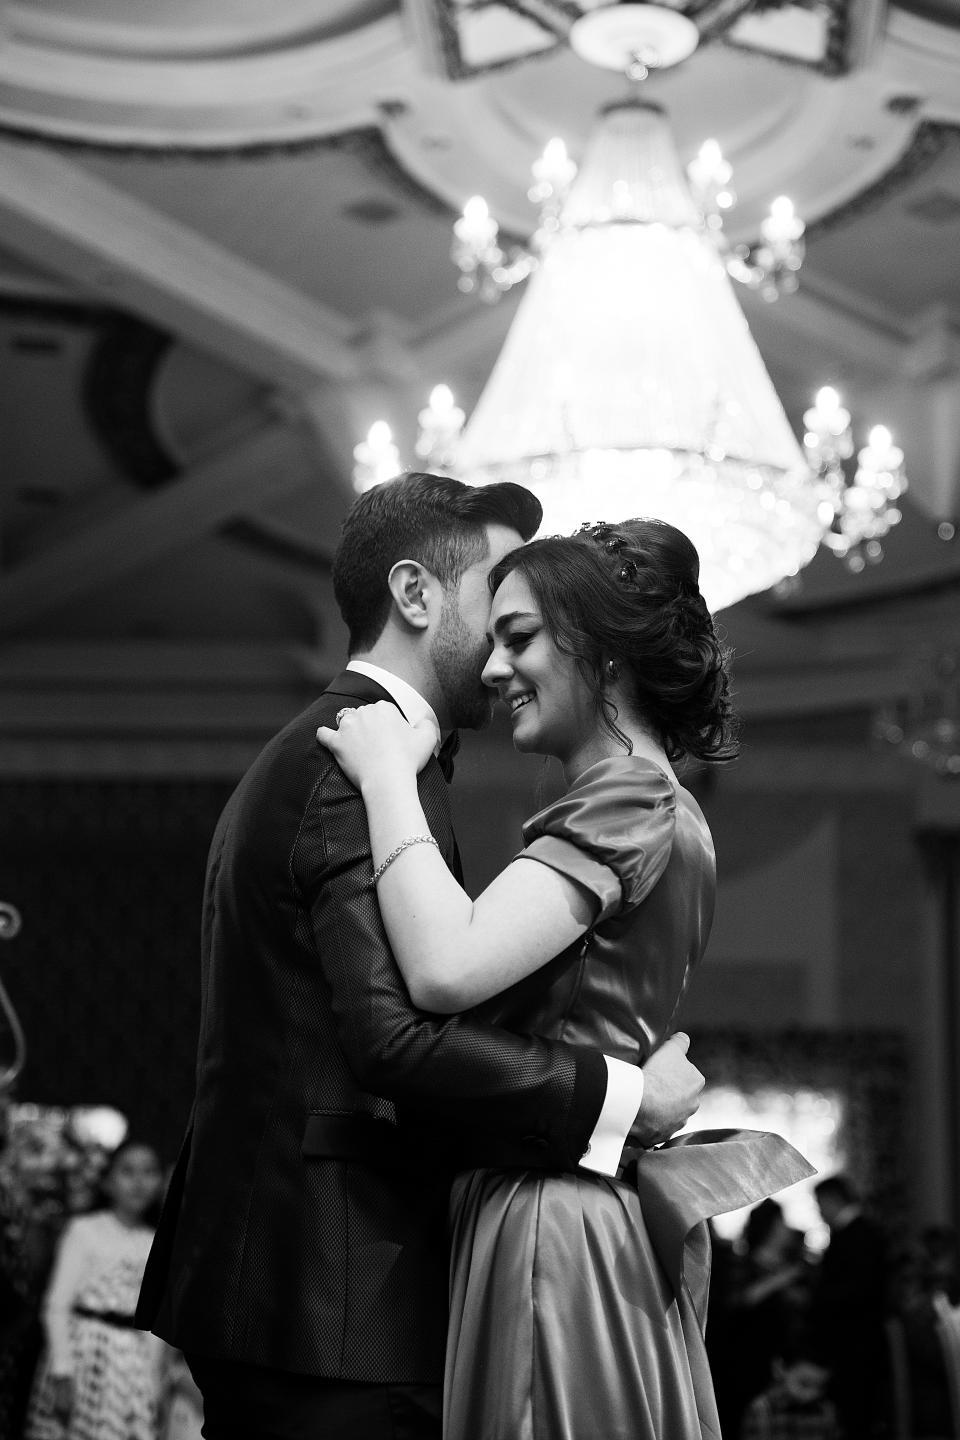 people, man, woman, female, male, hug, smile, happy, wedding, dance, black and white, party